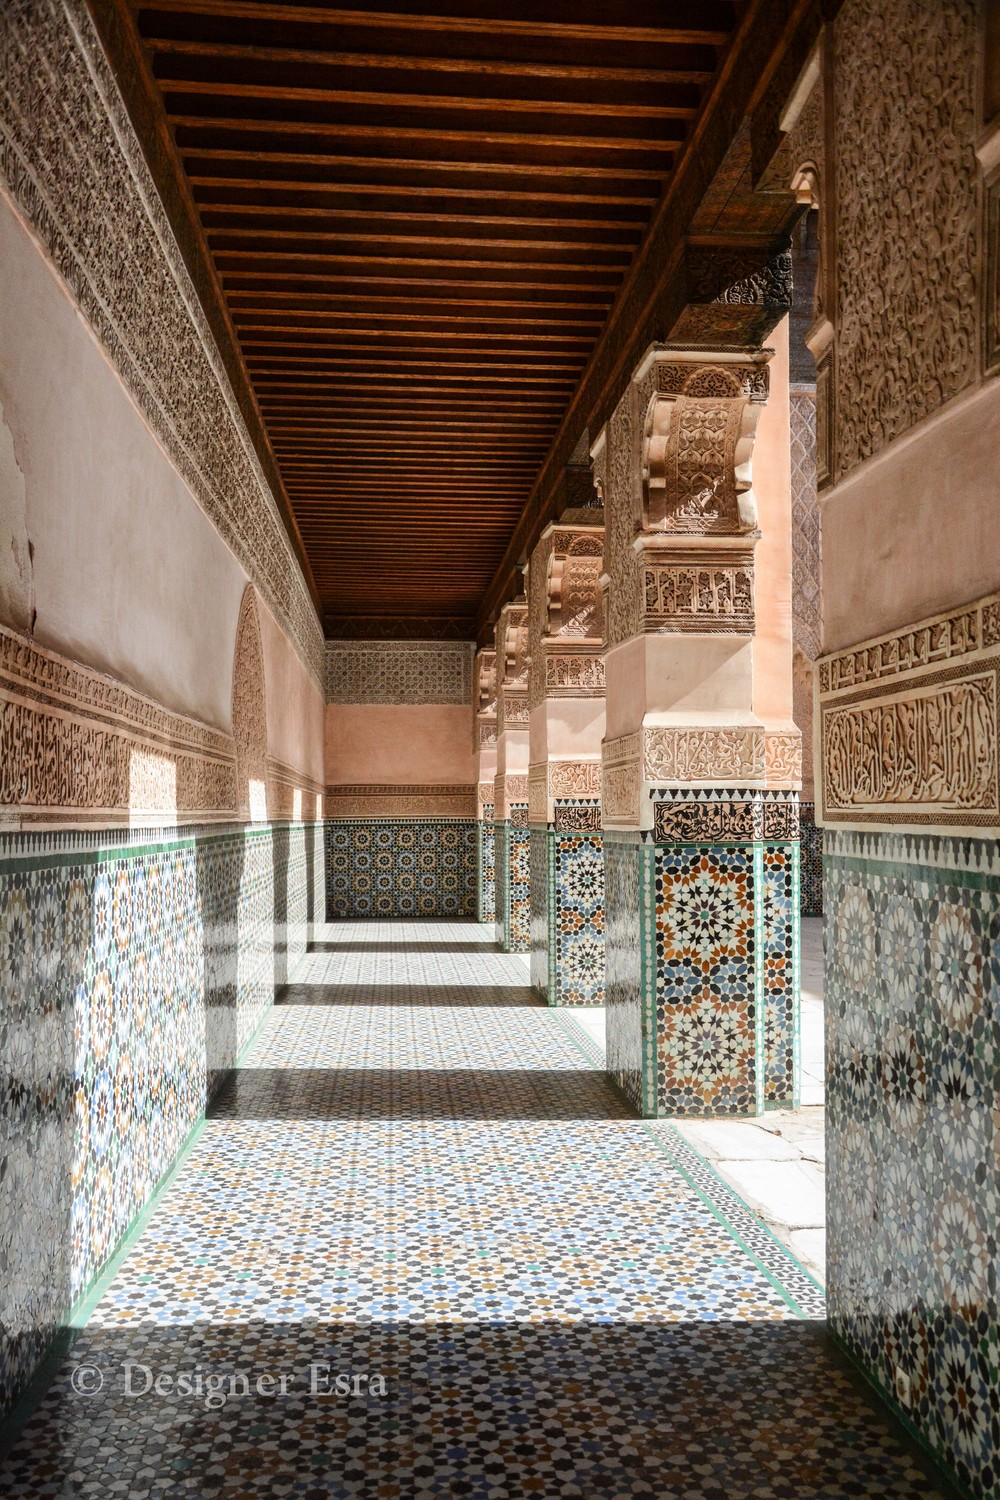 Islamic Patterns in Ben Youssef Madrasa